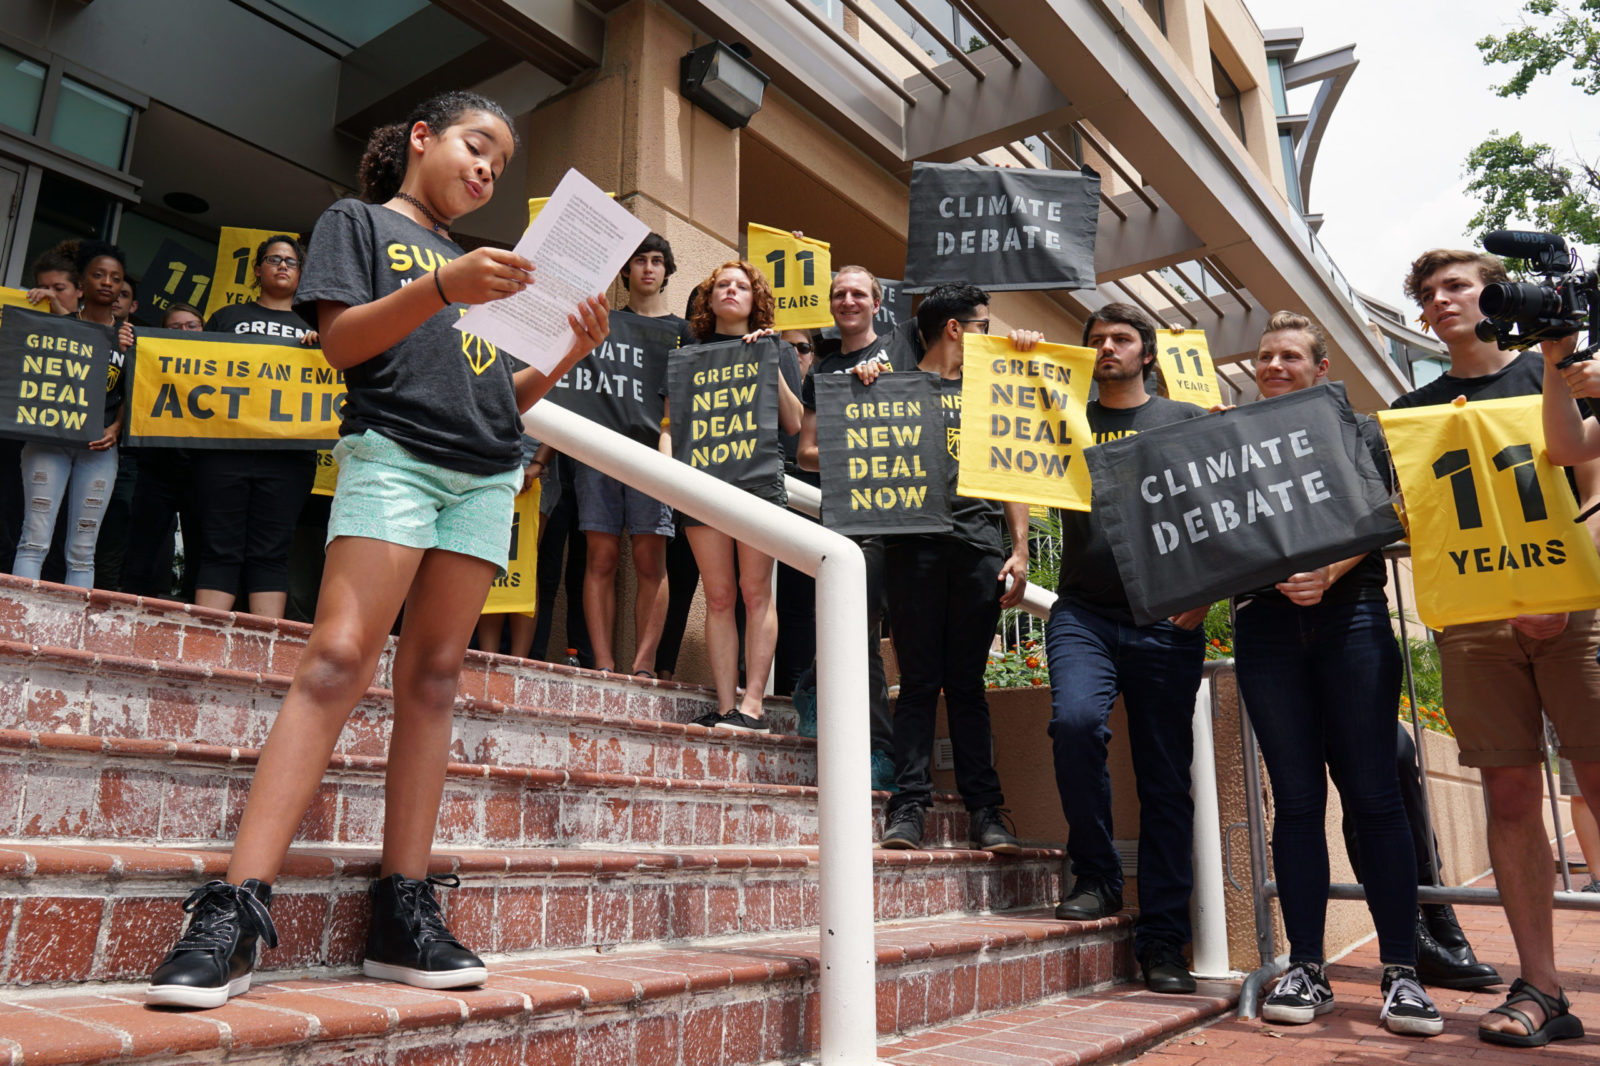 A young Sunrise leader gives a speech while being surrounded by fellow Sunrisers who occupy the entrance to the DNC headquarters in DC to demand a presidential climate debate.